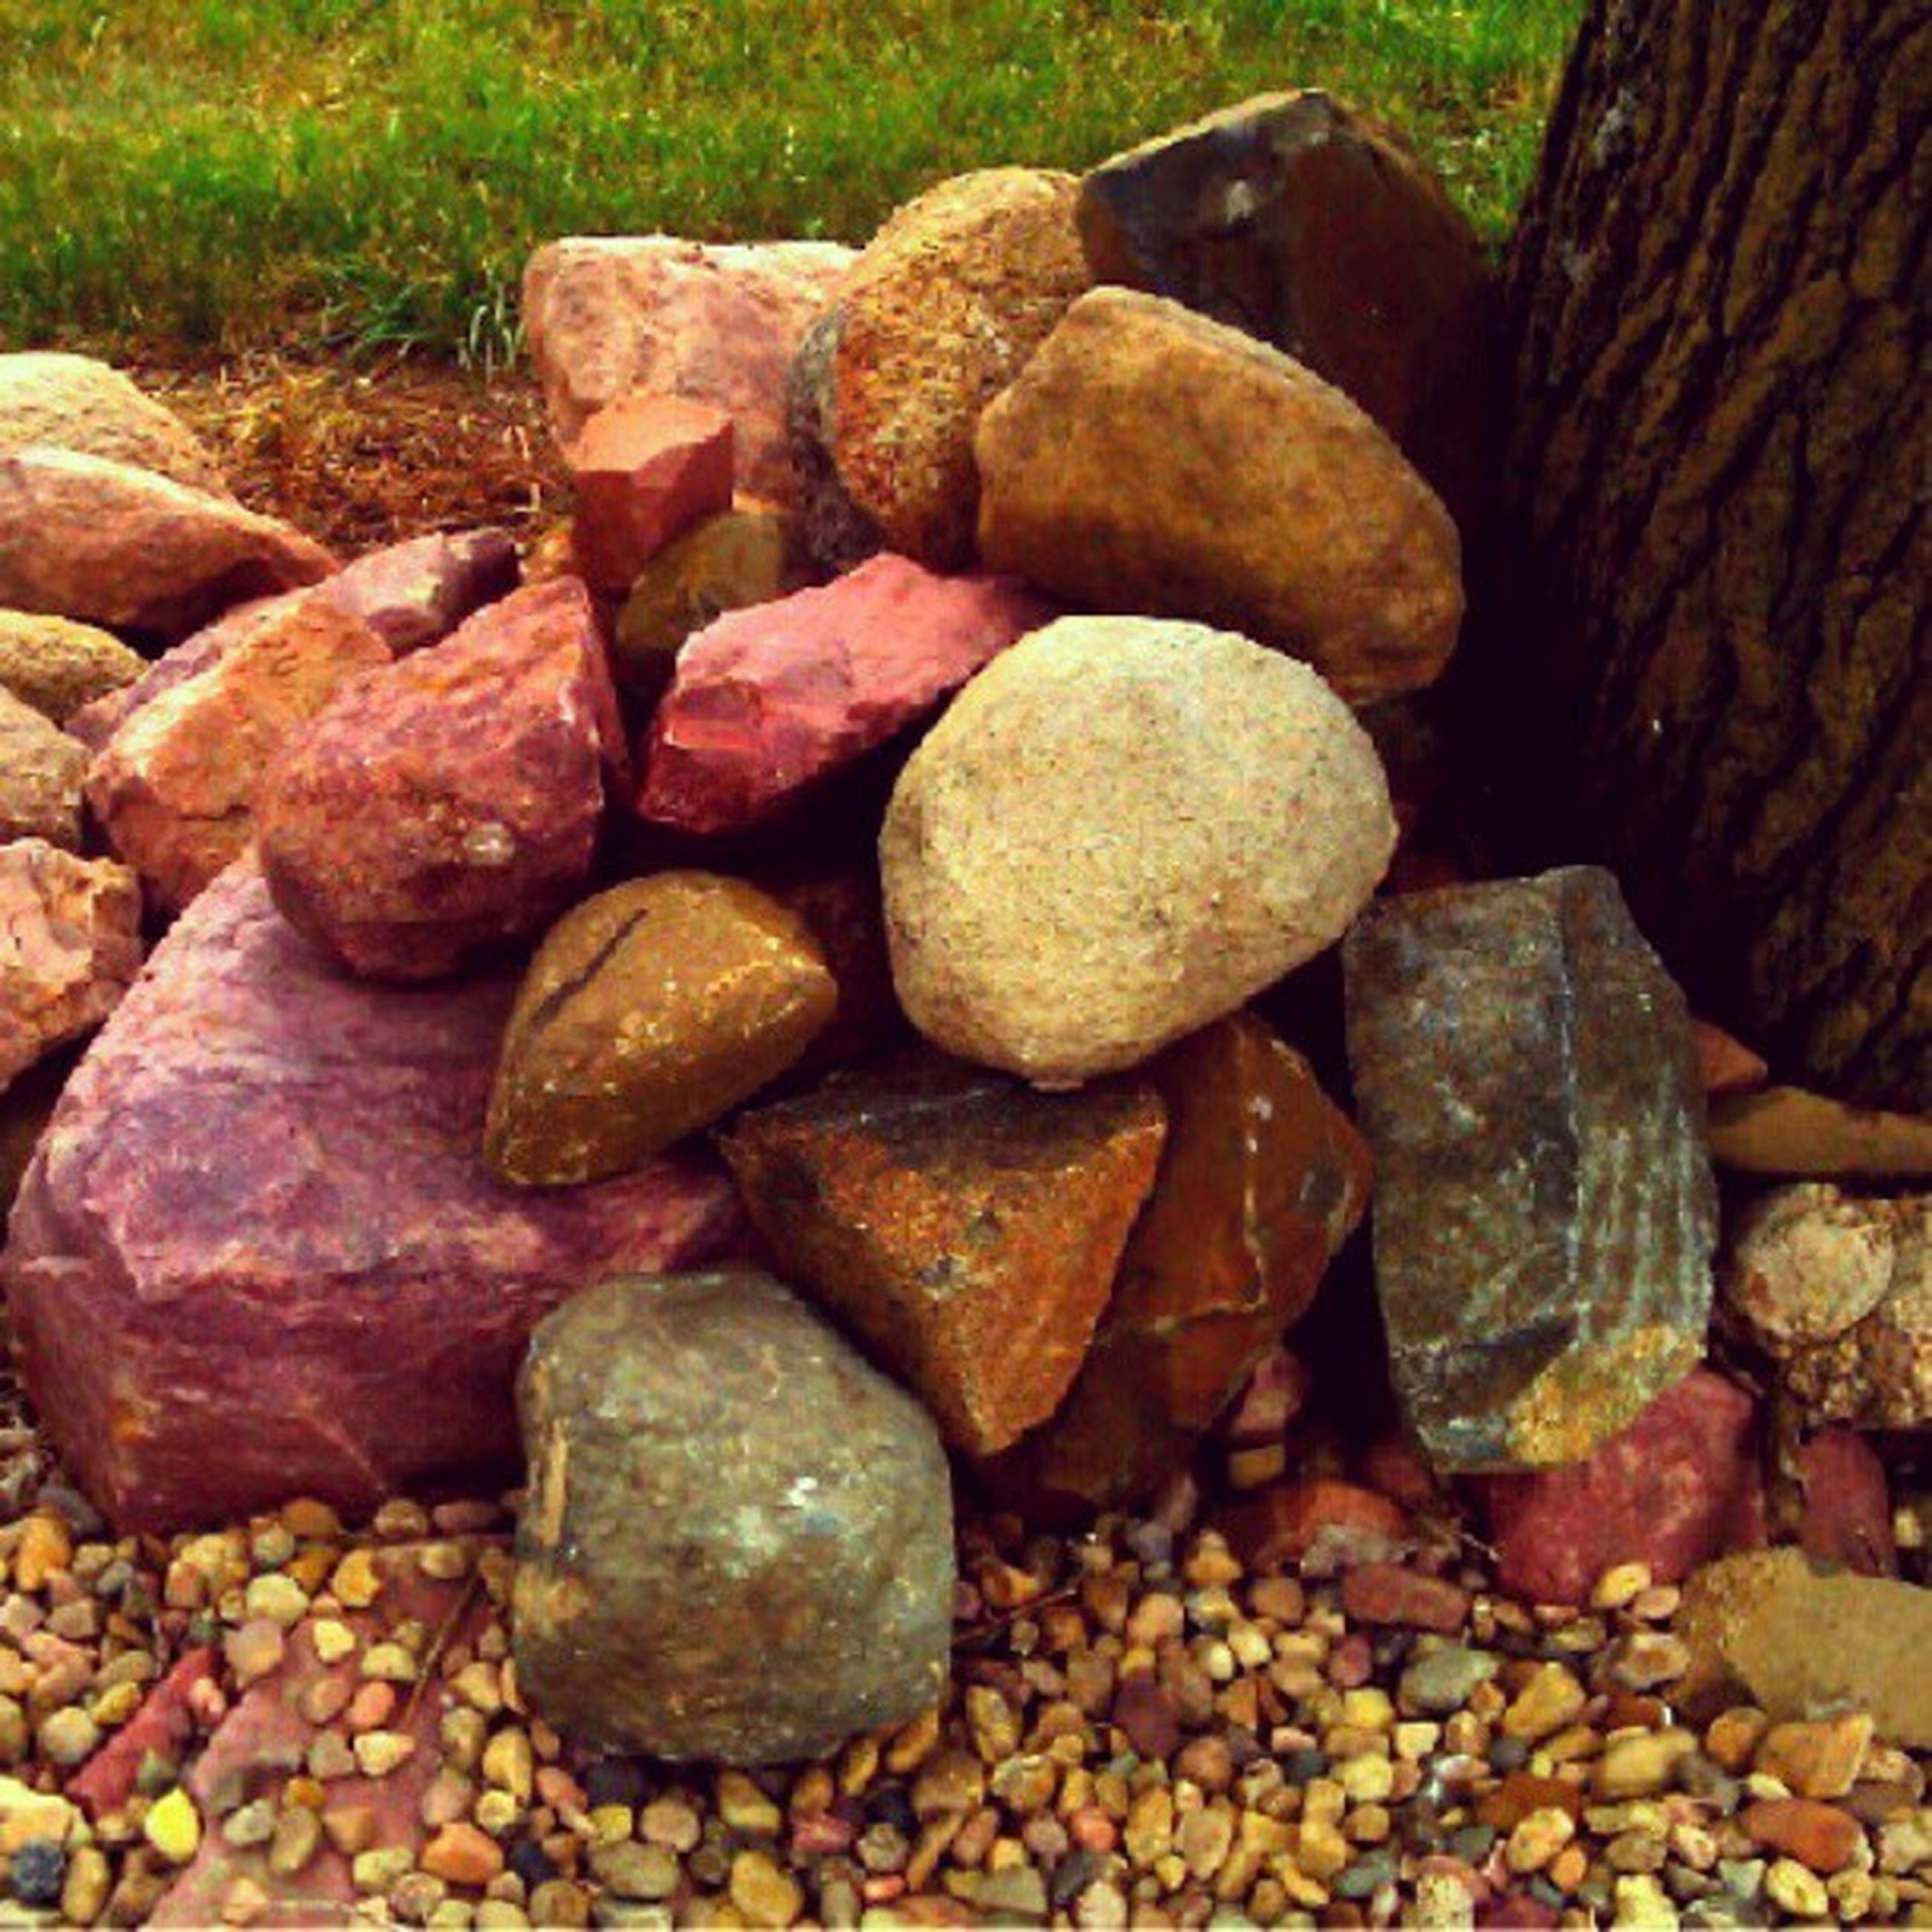 stack, abundance, large group of objects, stone - object, log, firewood, deforestation, rock - object, pebble, lumber industry, stone, timber, nature, heap, wood - material, outdoors, tranquility, day, textured, no people